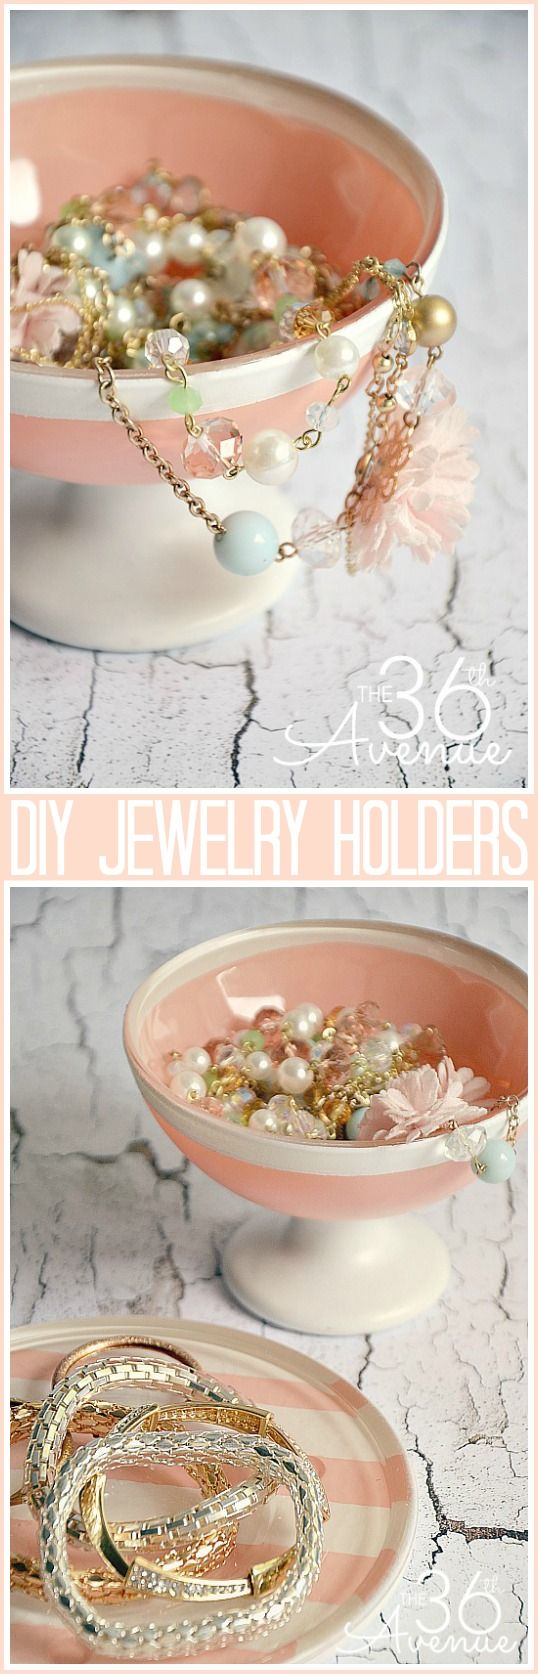 GIFT IDEA : DIY Jewelry Holders made with Dollar Store dishes... So cute! the36thavenue.com